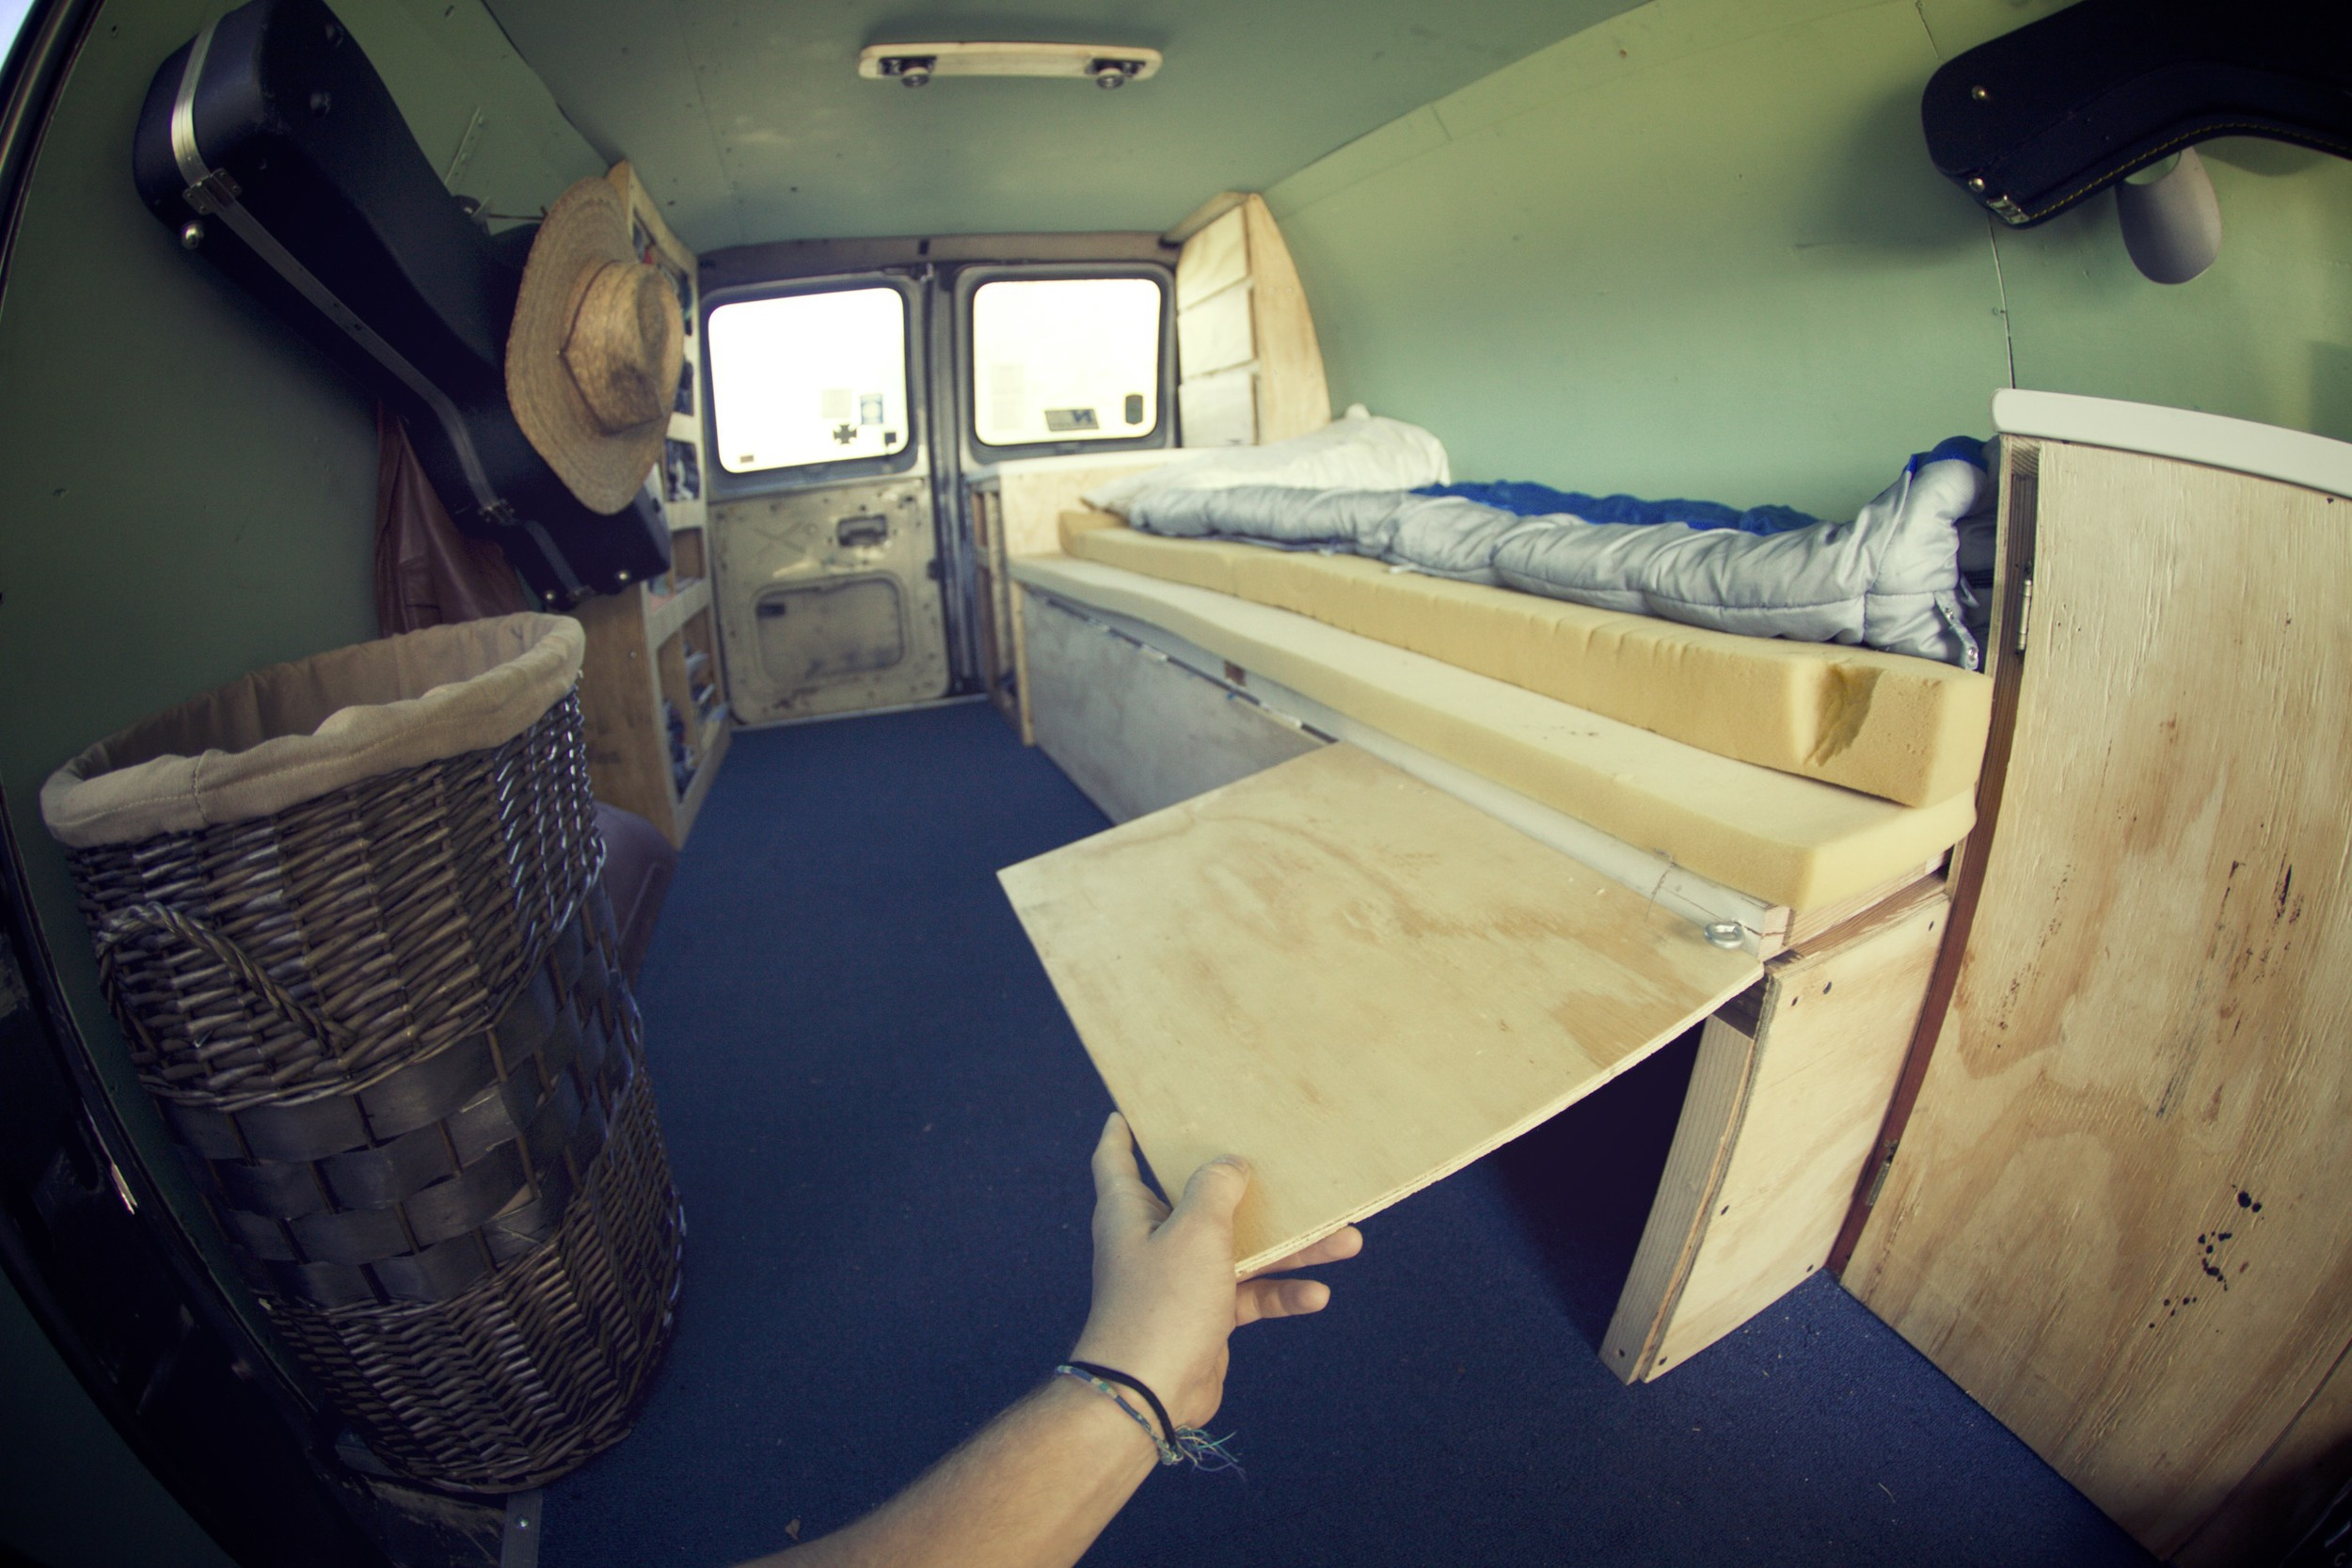 There are three boxes that slide out from under the bed. We built three little doors to access them.